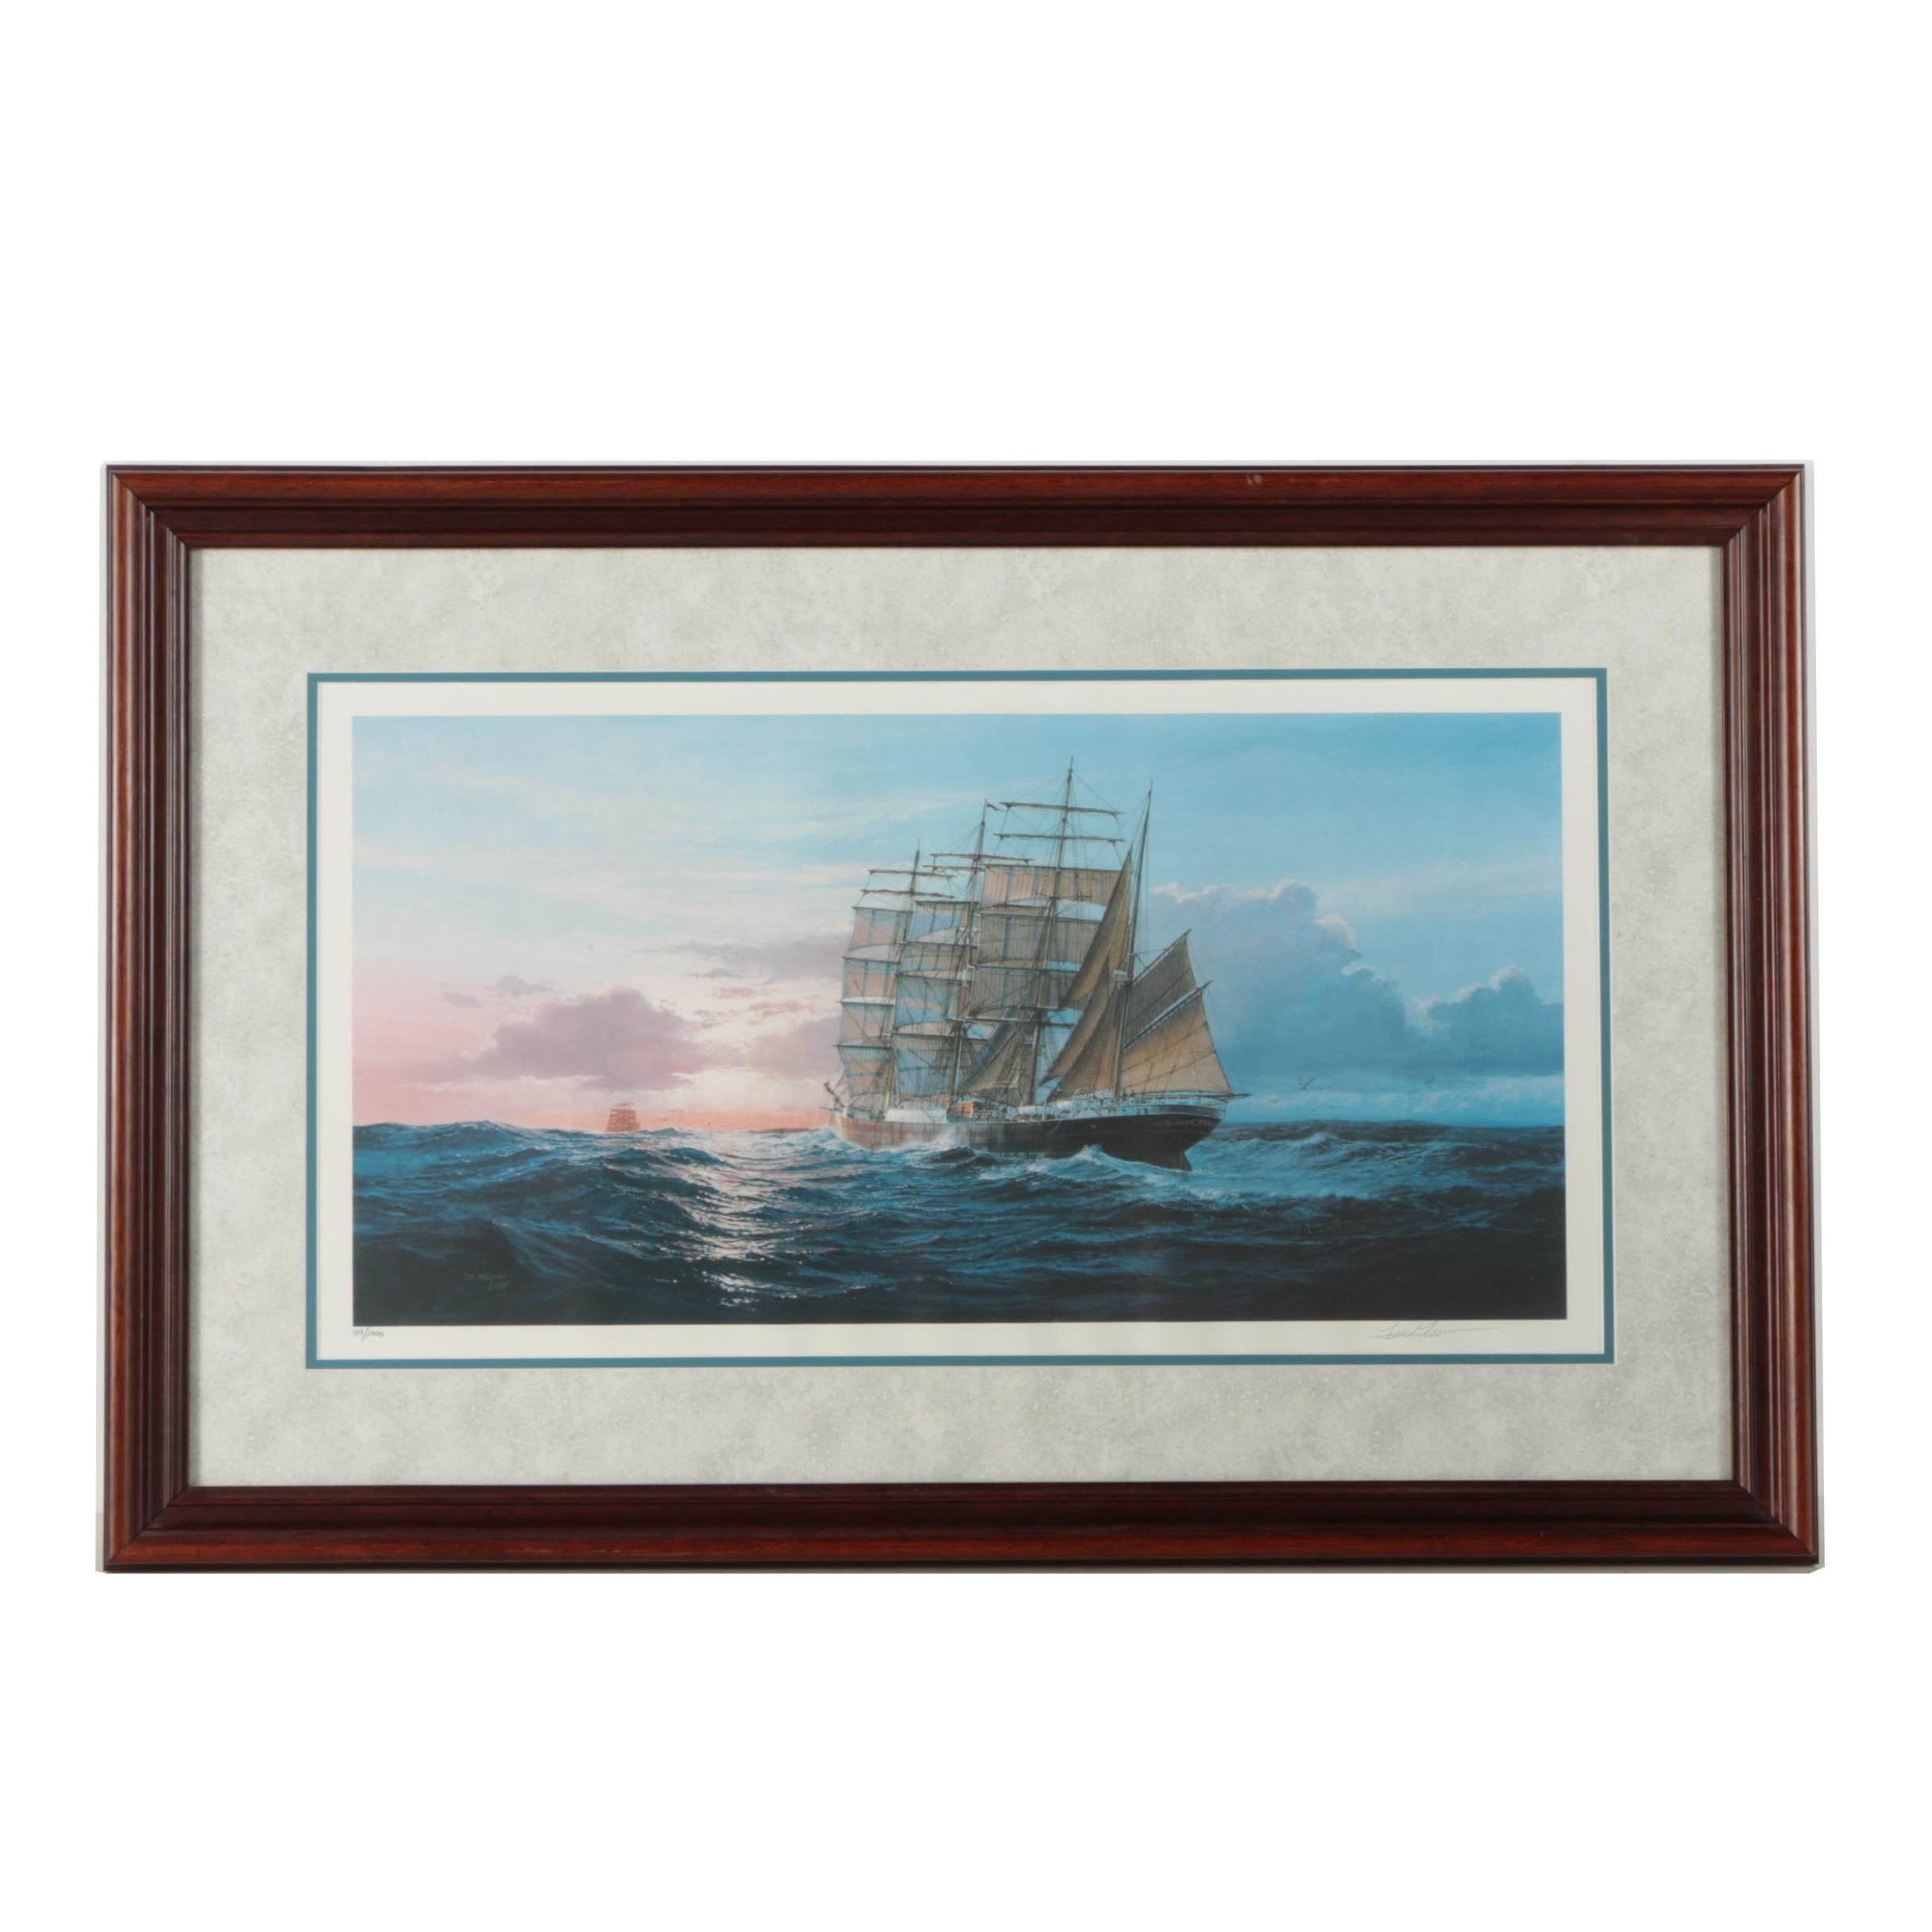 Tom Freeman Limited Edition Offset Lithograph of a Ship